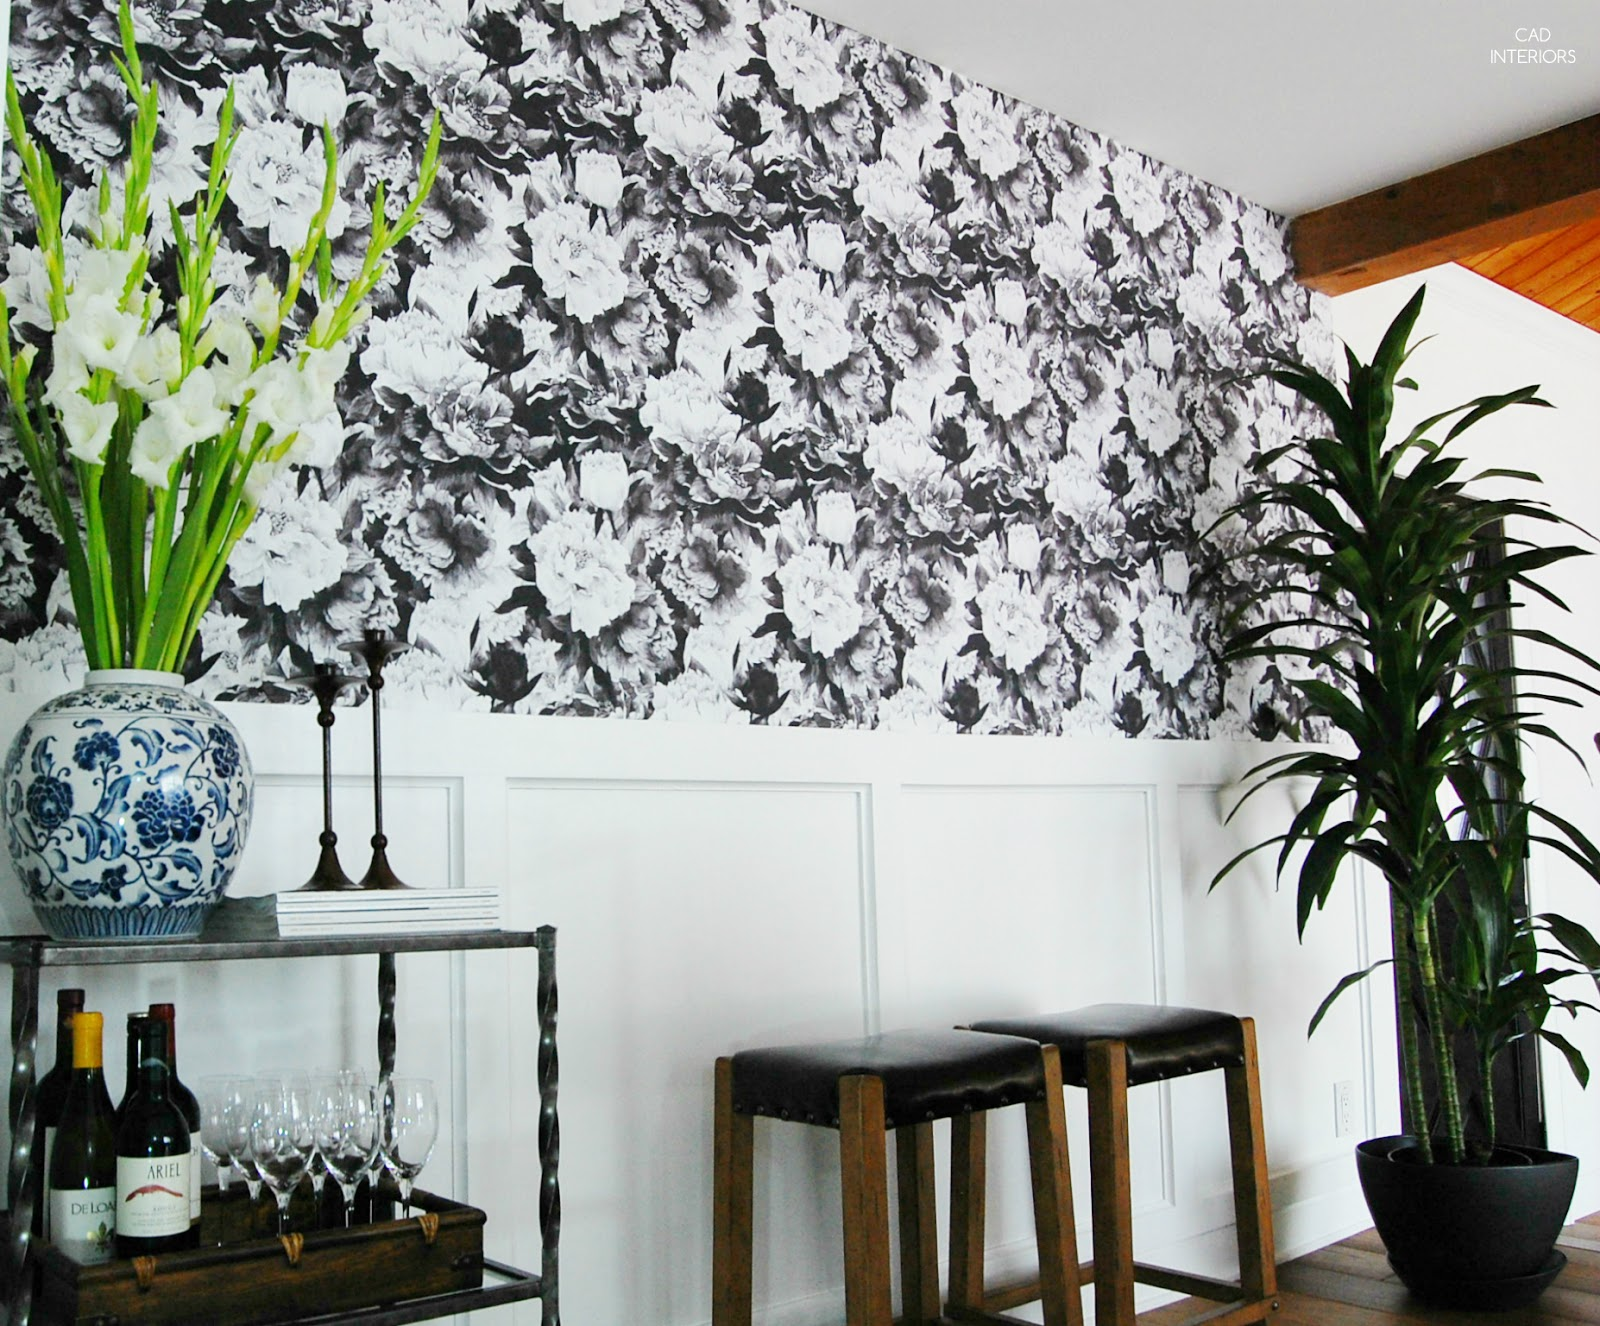 removable repositionable peel and stick black and white wallpaper walls need love diy home improvement focal wall design tips